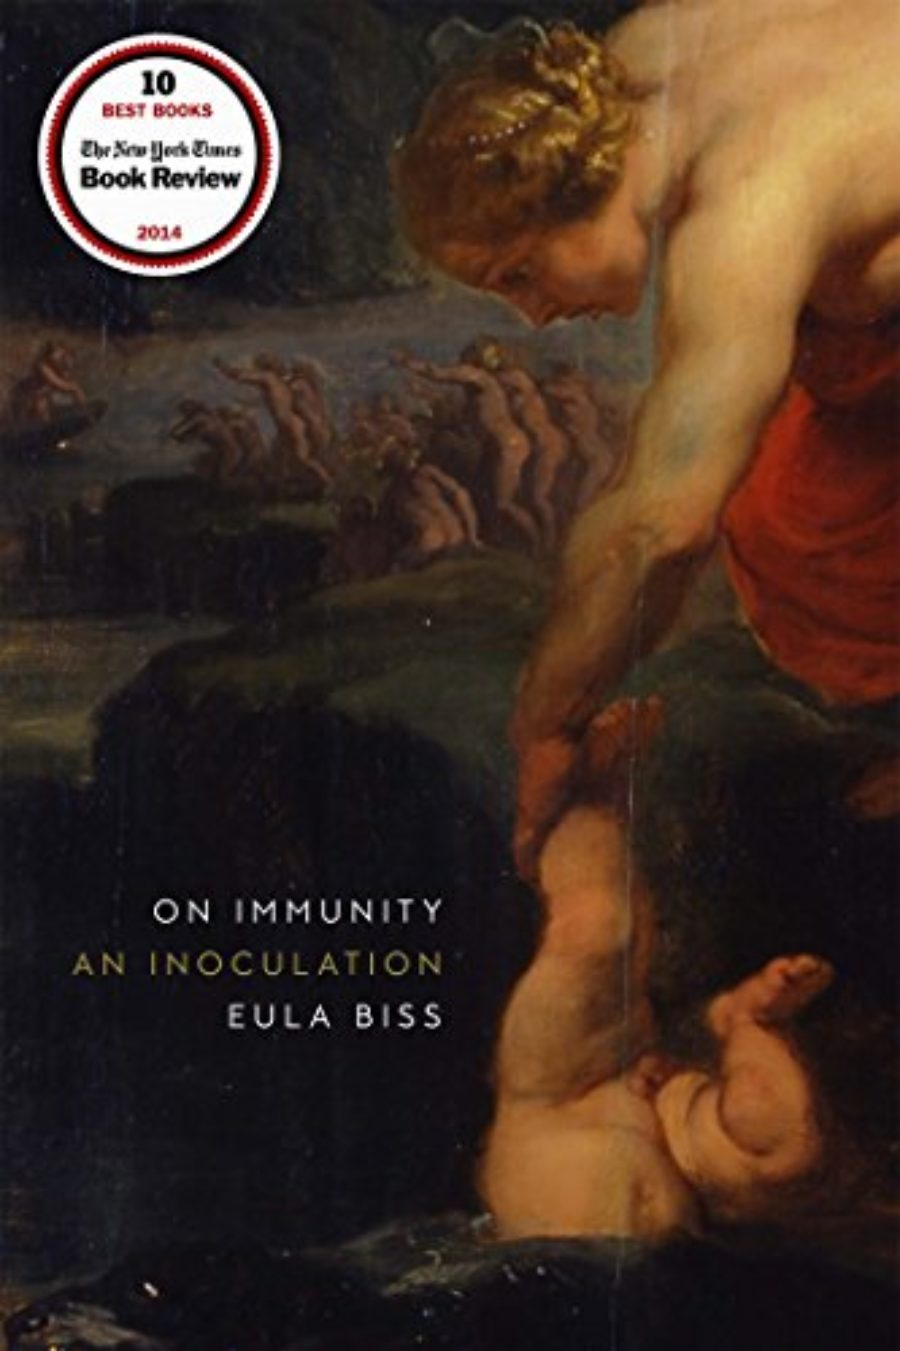 Cover of On Immunity: An Inoculation